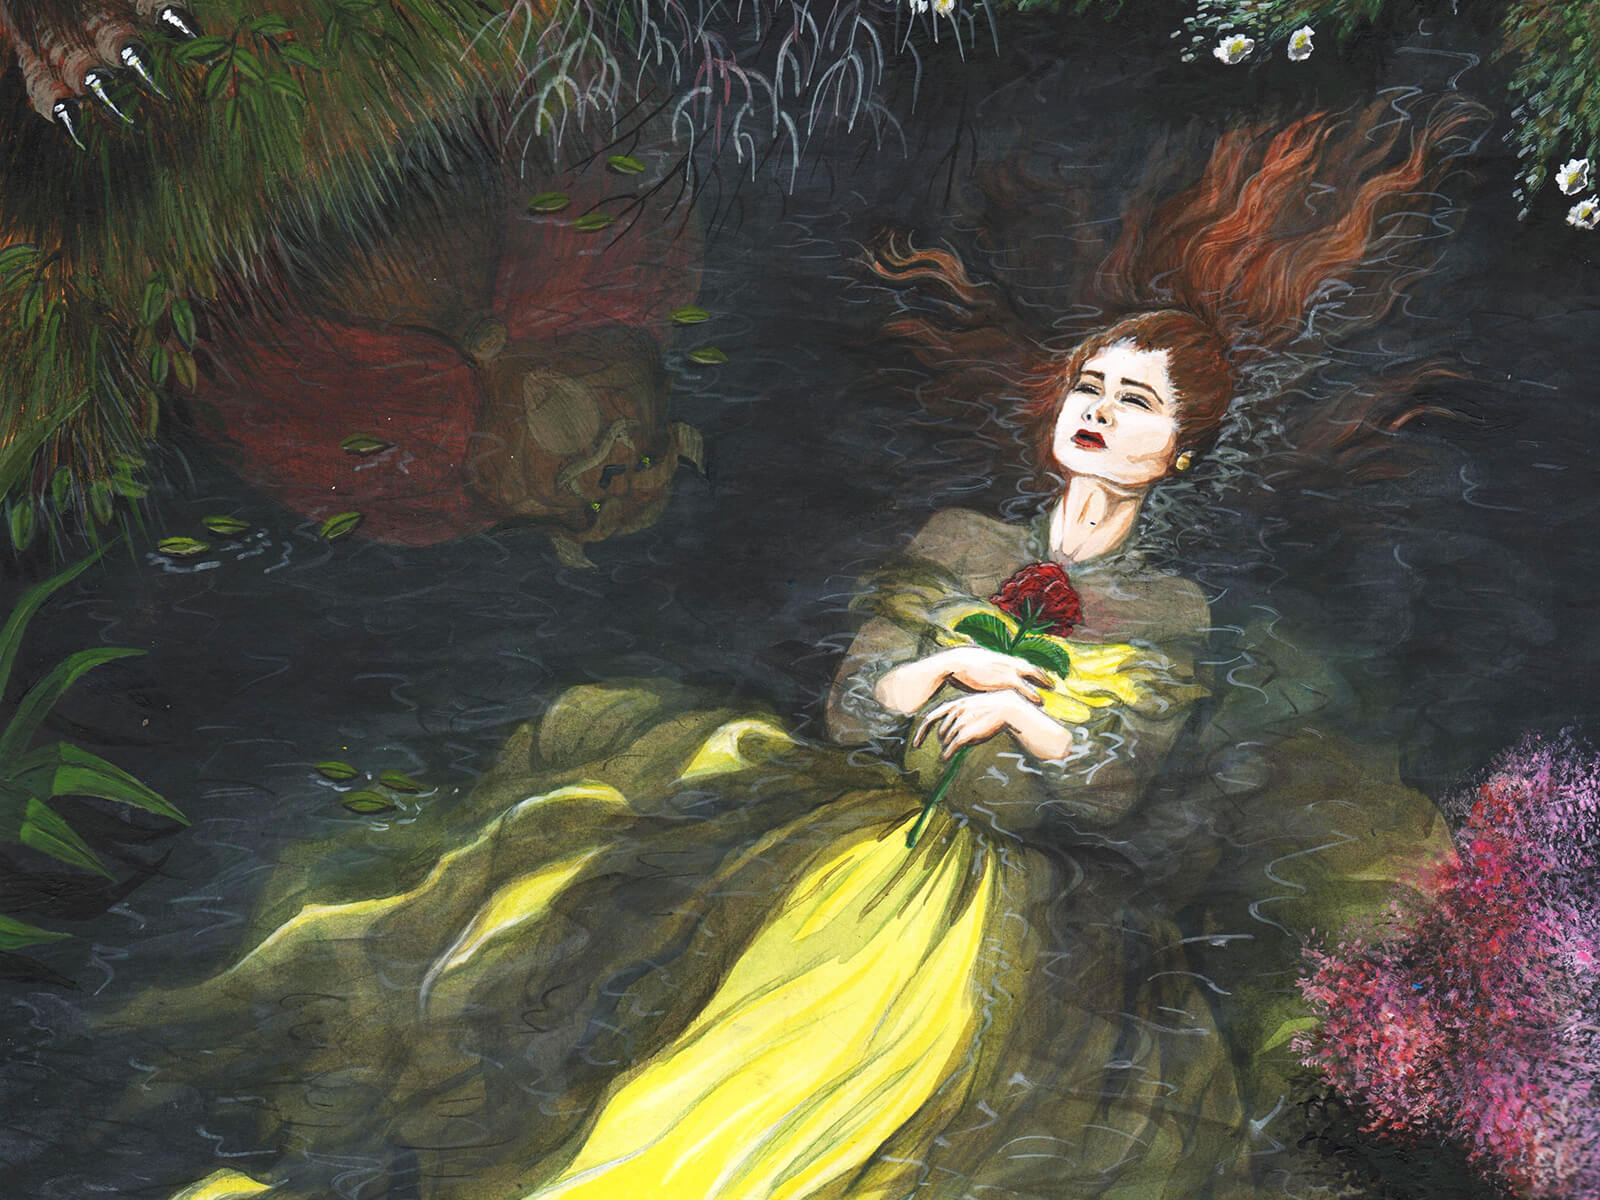 A woman in a flowing yellow dress clutches a single red flower at her chest floating unconscious in a forest pond.